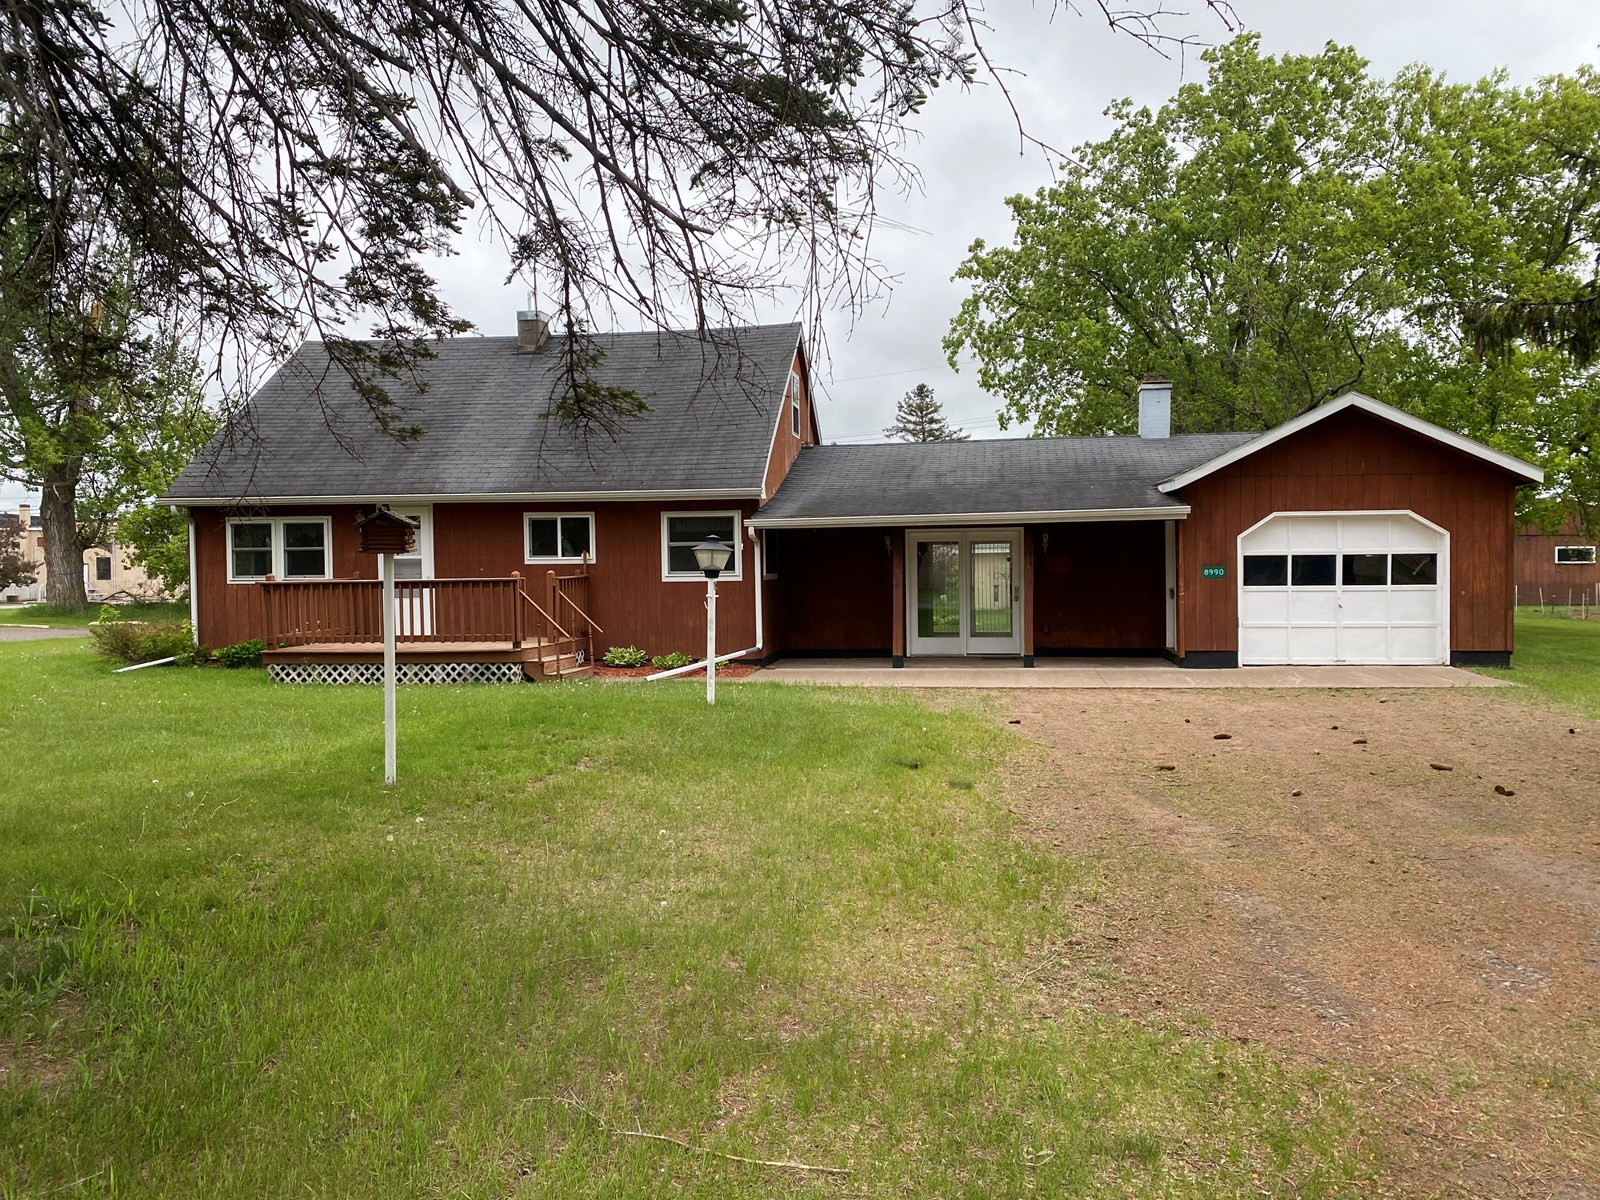 Quaint 1 Bedroom Home For Sale In Sturgeon Lake, MN